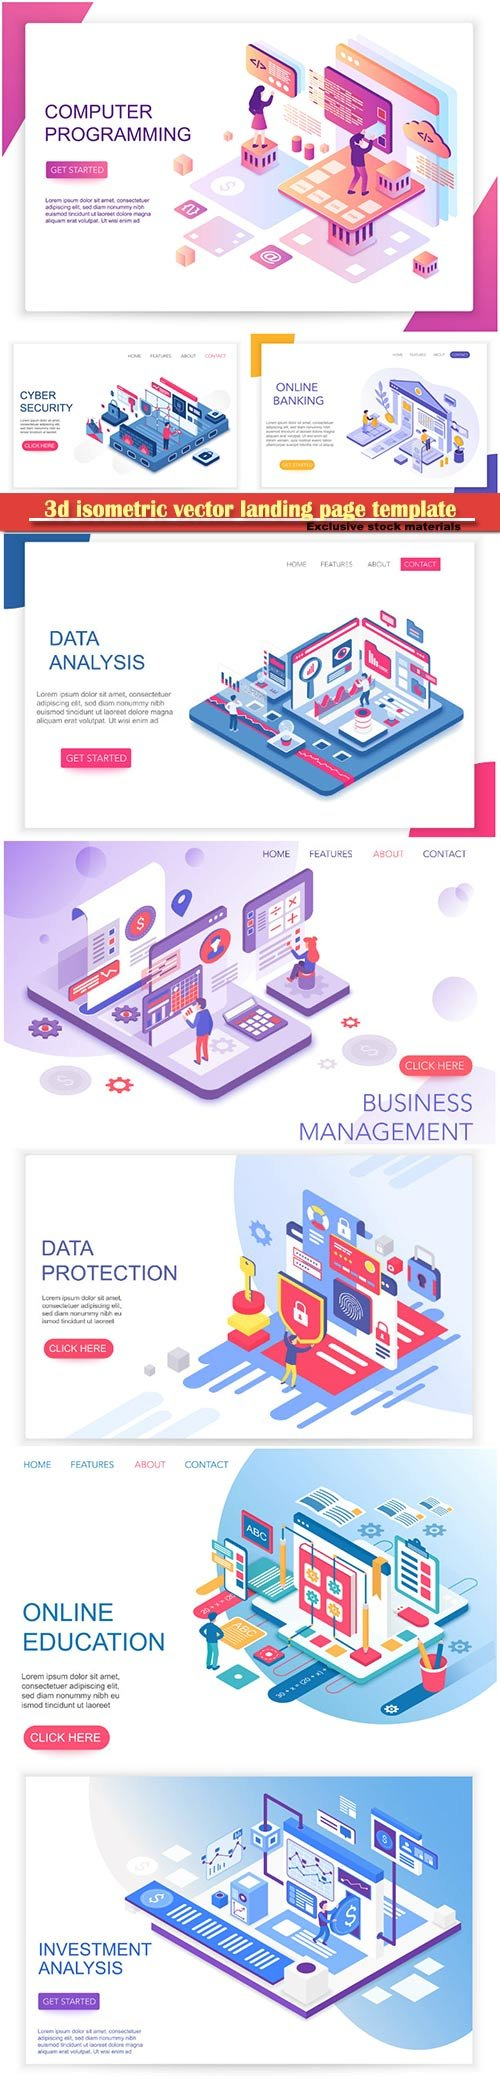 3d isometric vector landing page template